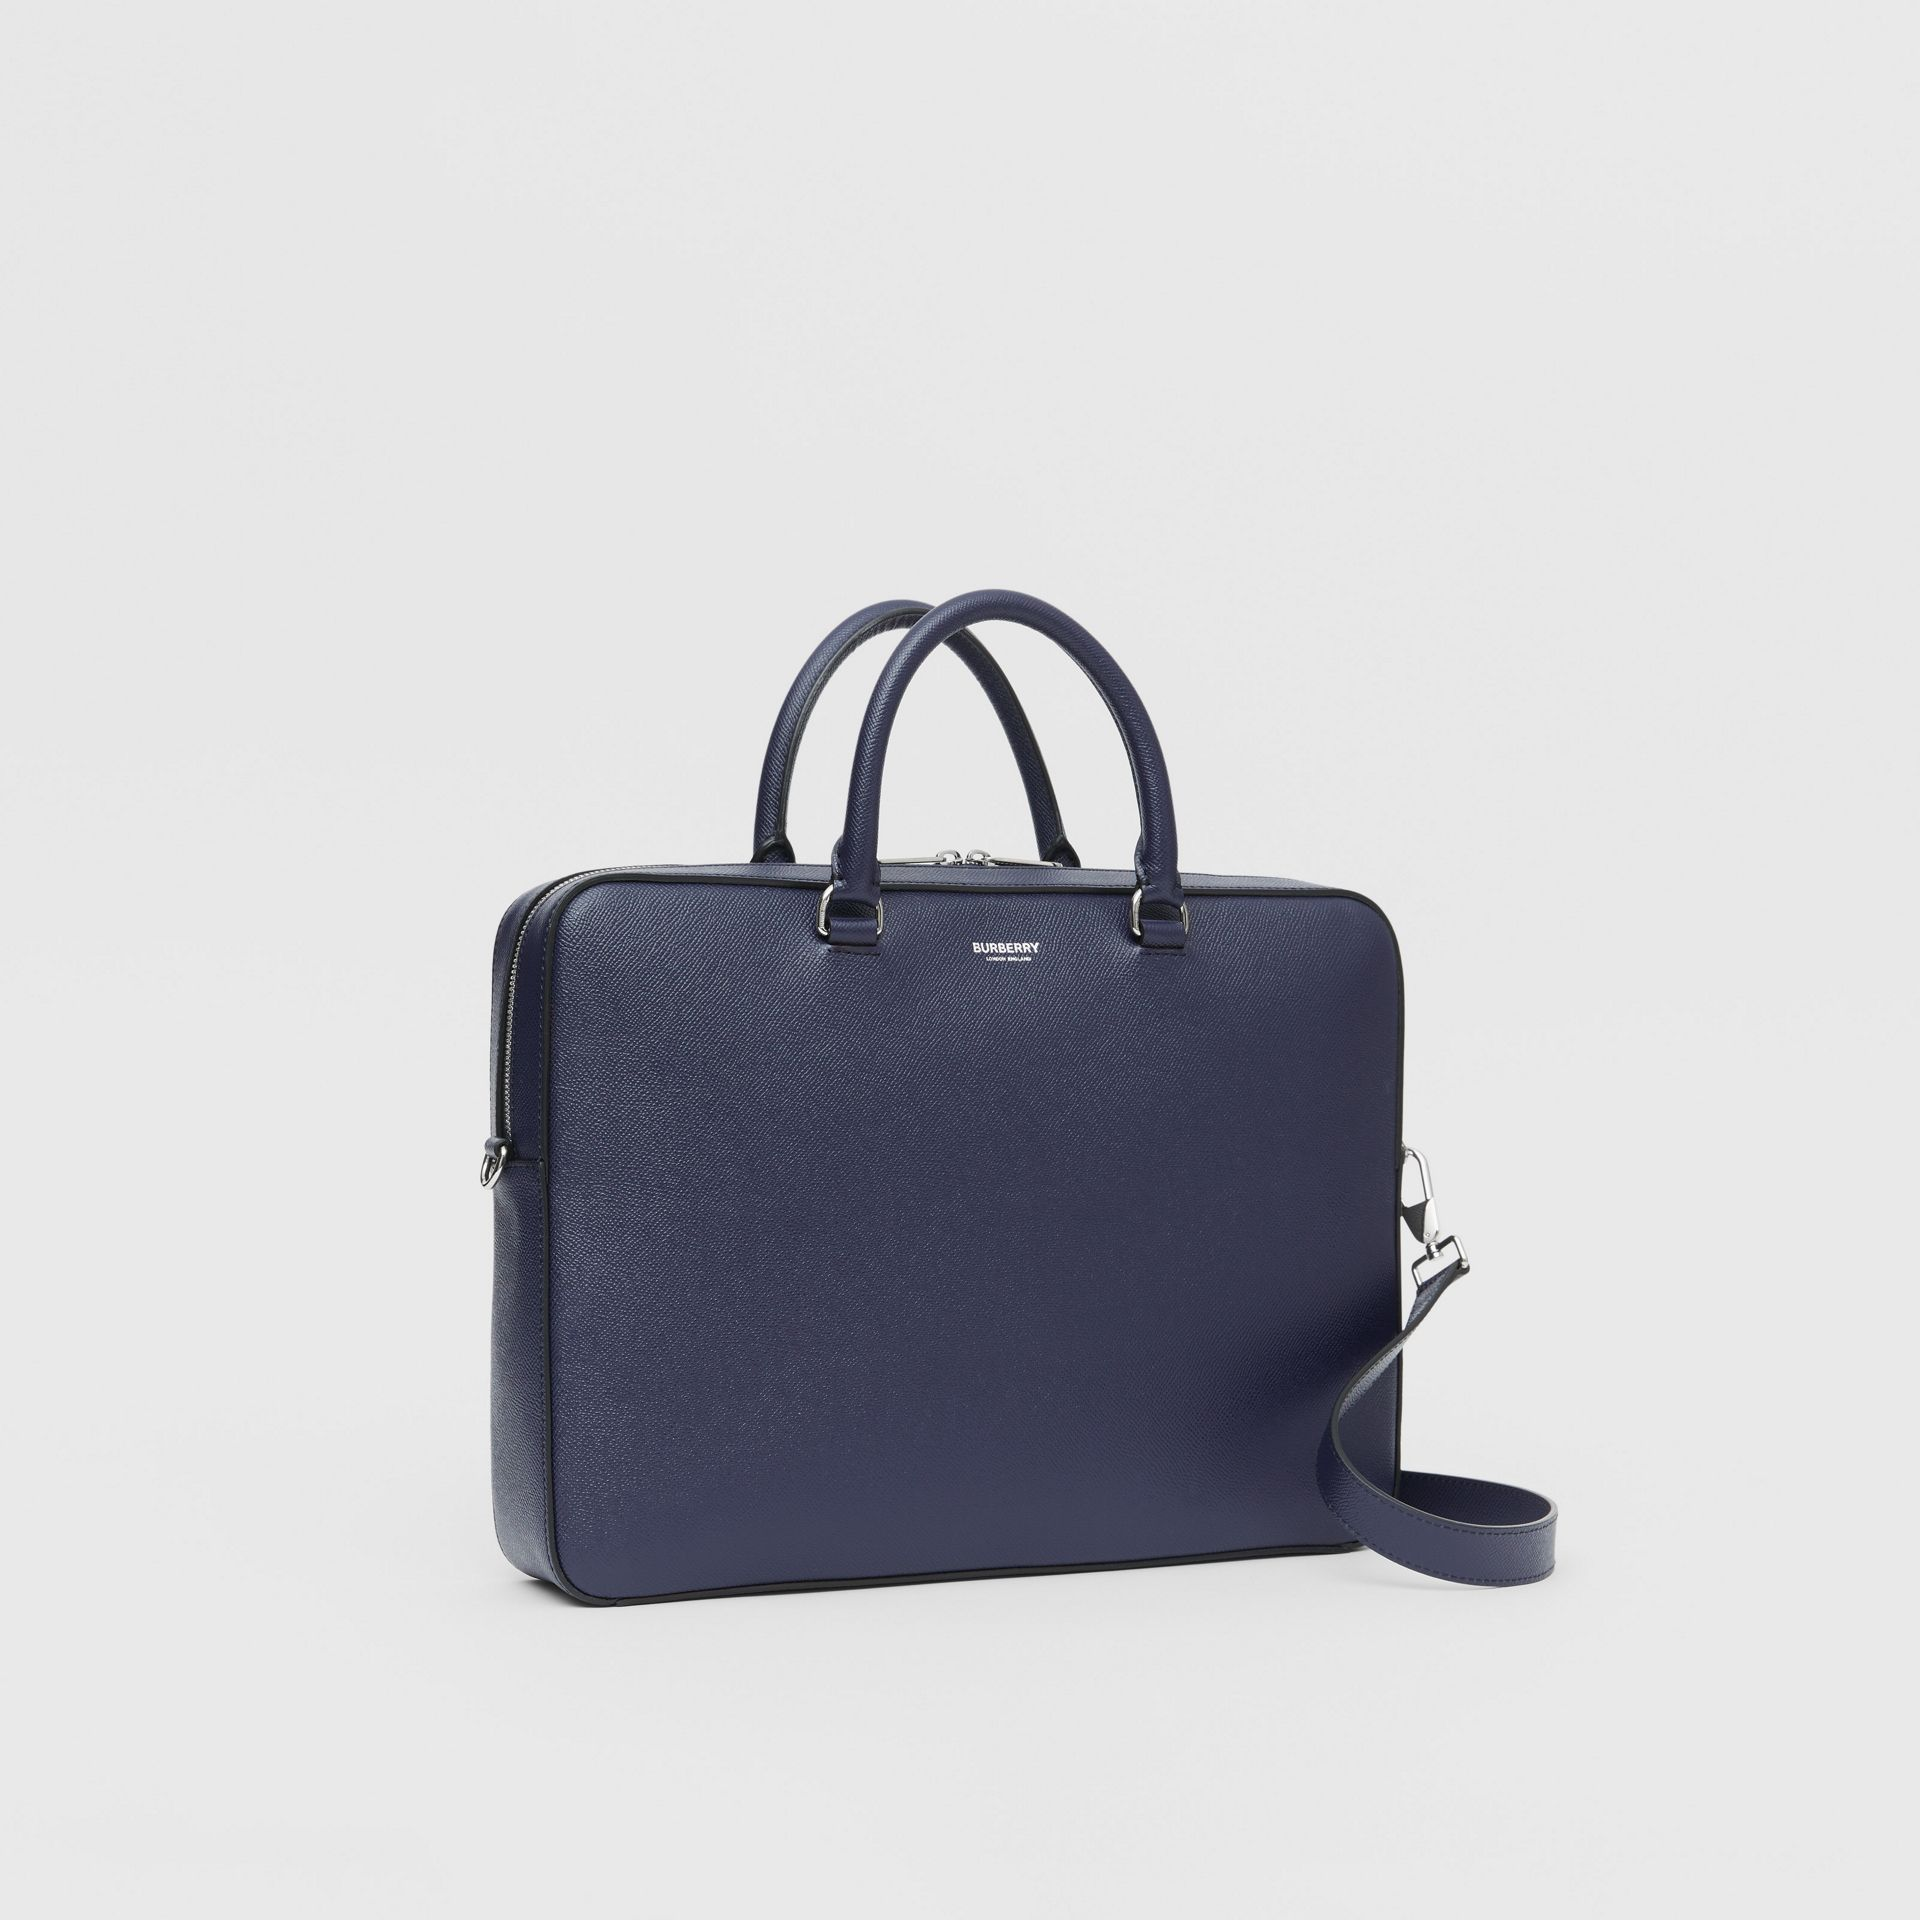 Attaché-case en cuir grainé (Bleu Régence) - Homme | Burberry - photo de la galerie 6